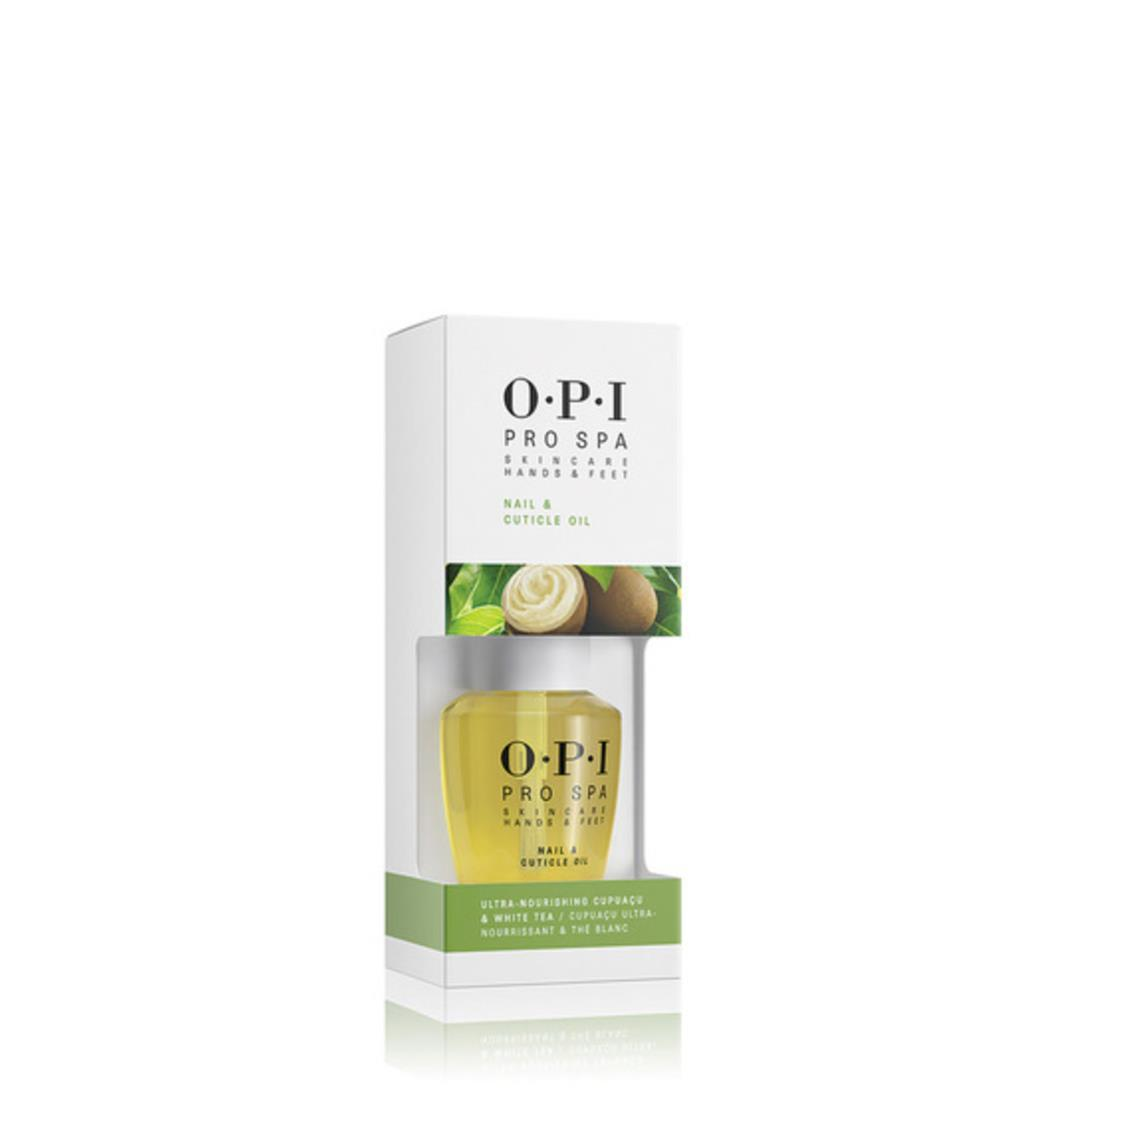 Opi Prospa Nail  Cuticle Oil 148ml